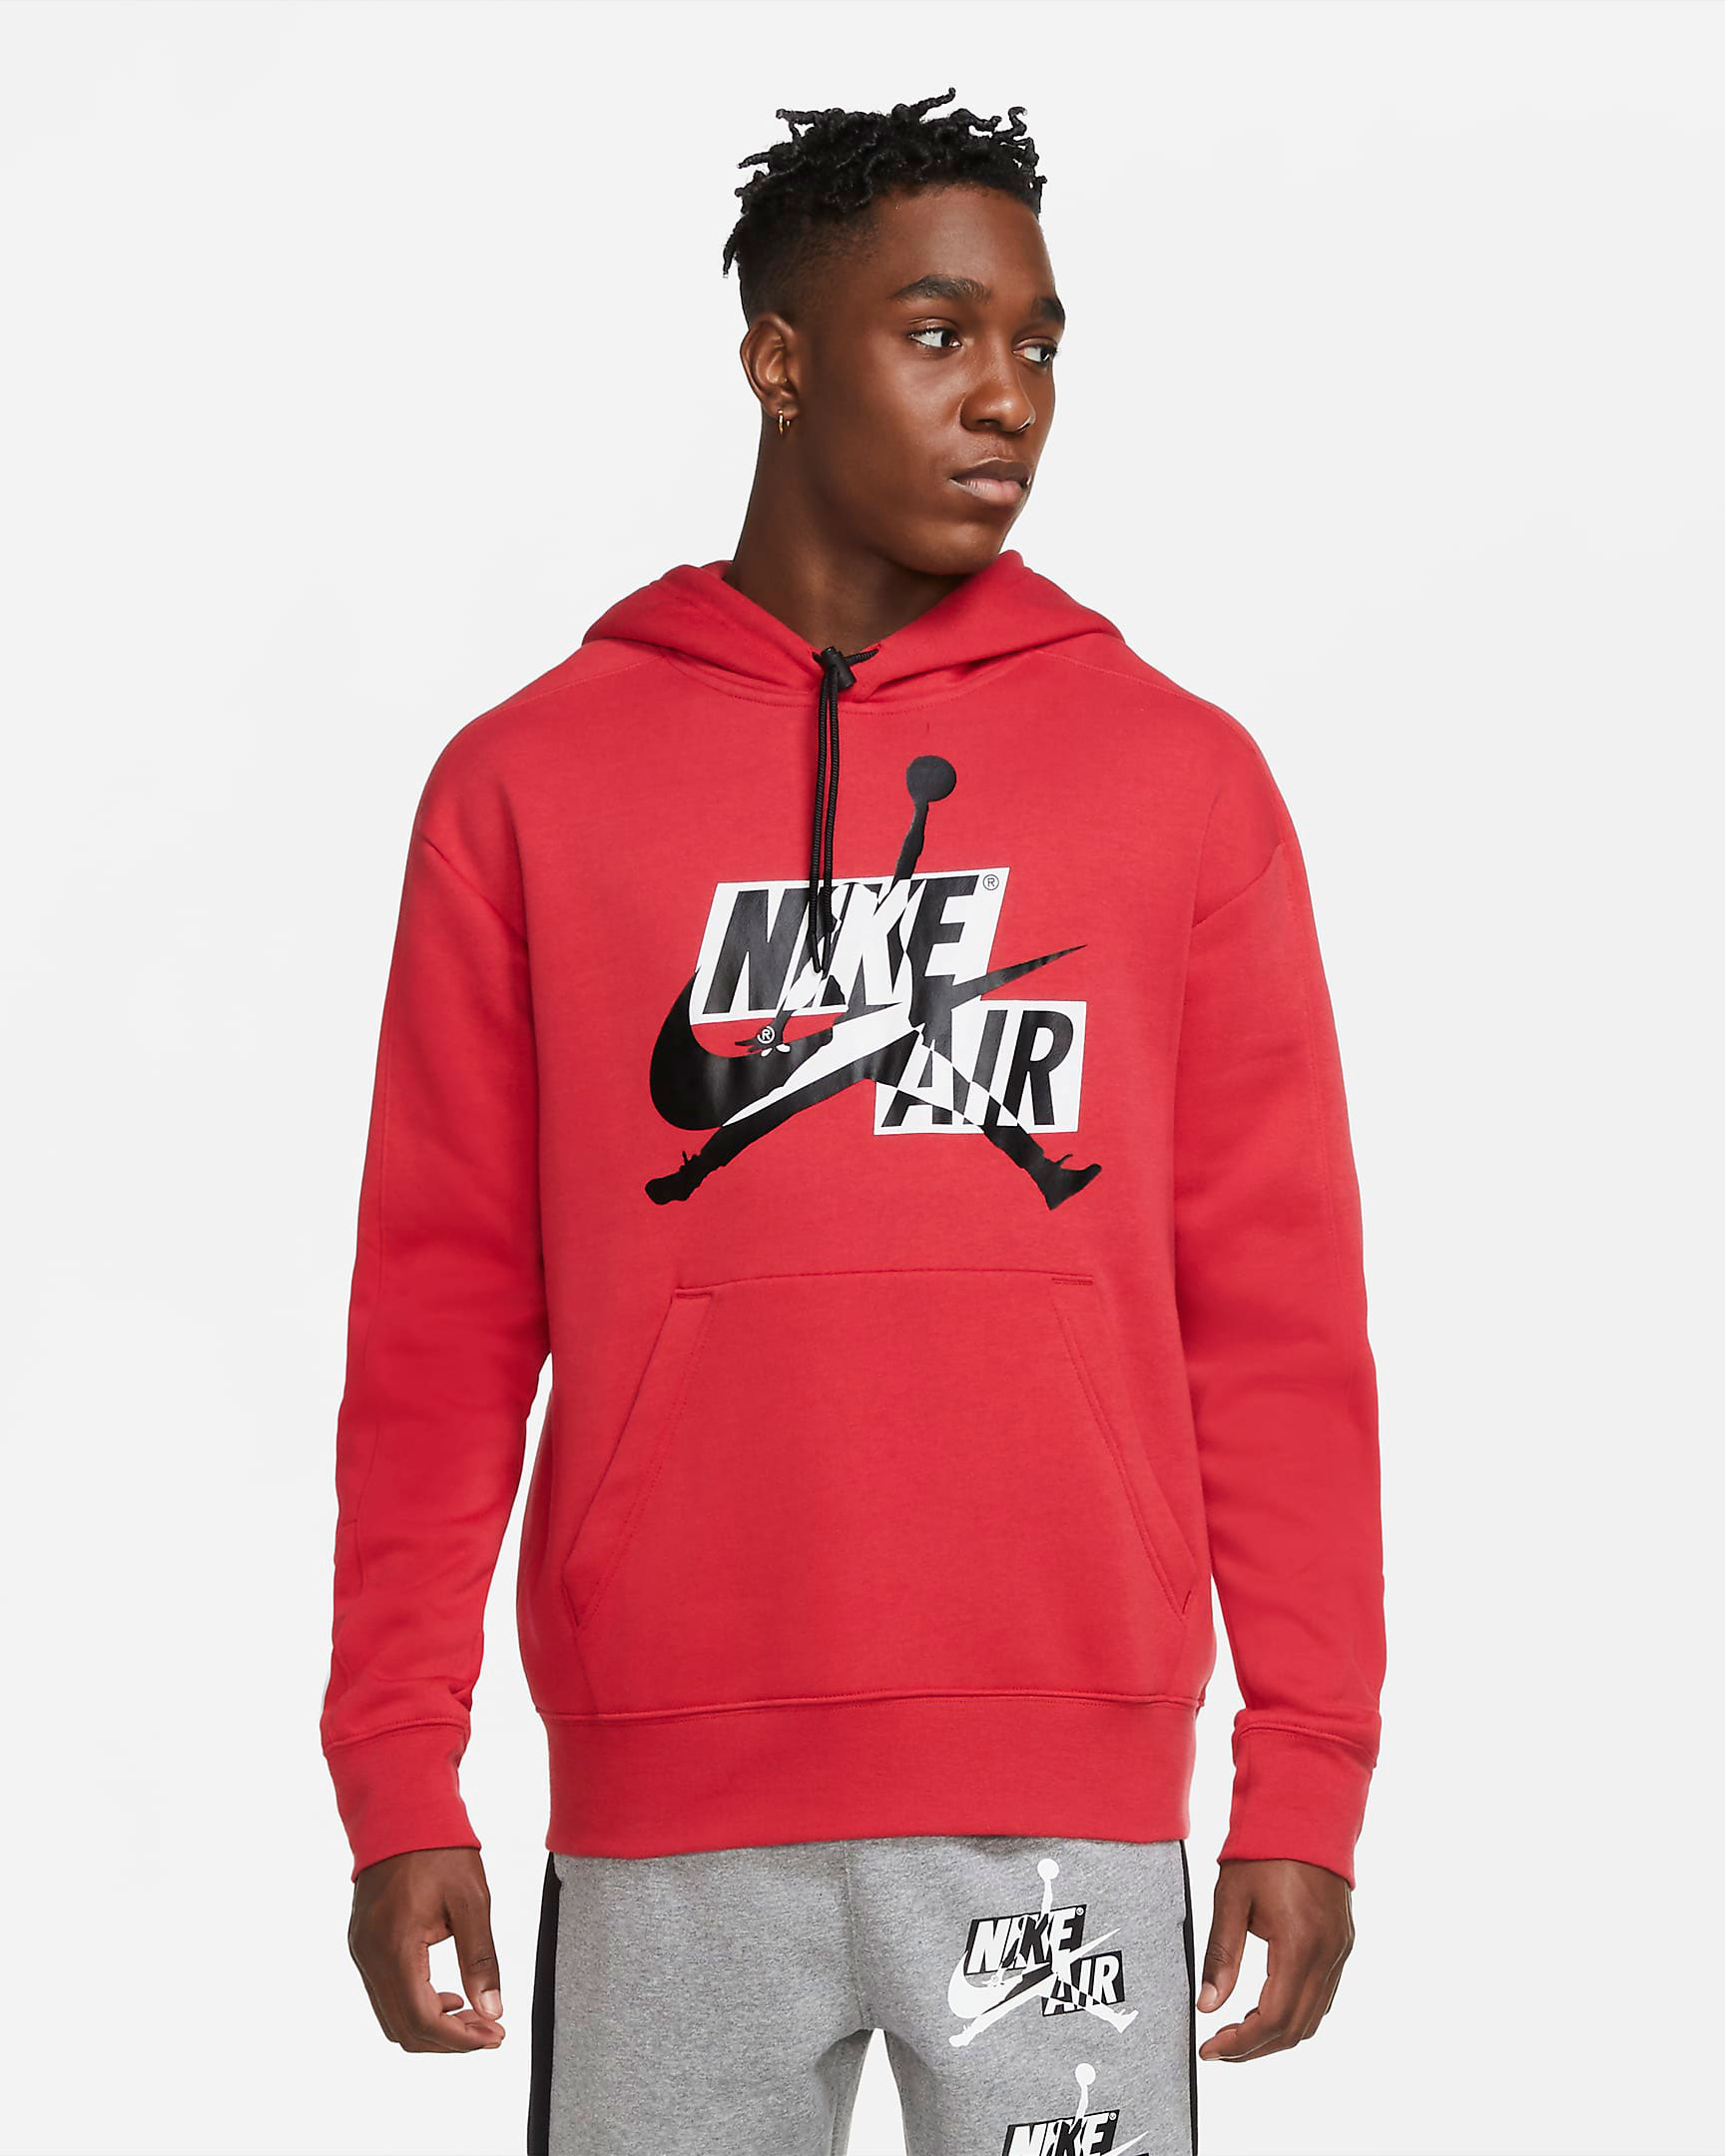 air-jordan-4-fire-red-jumpman-classic-hoodie-red